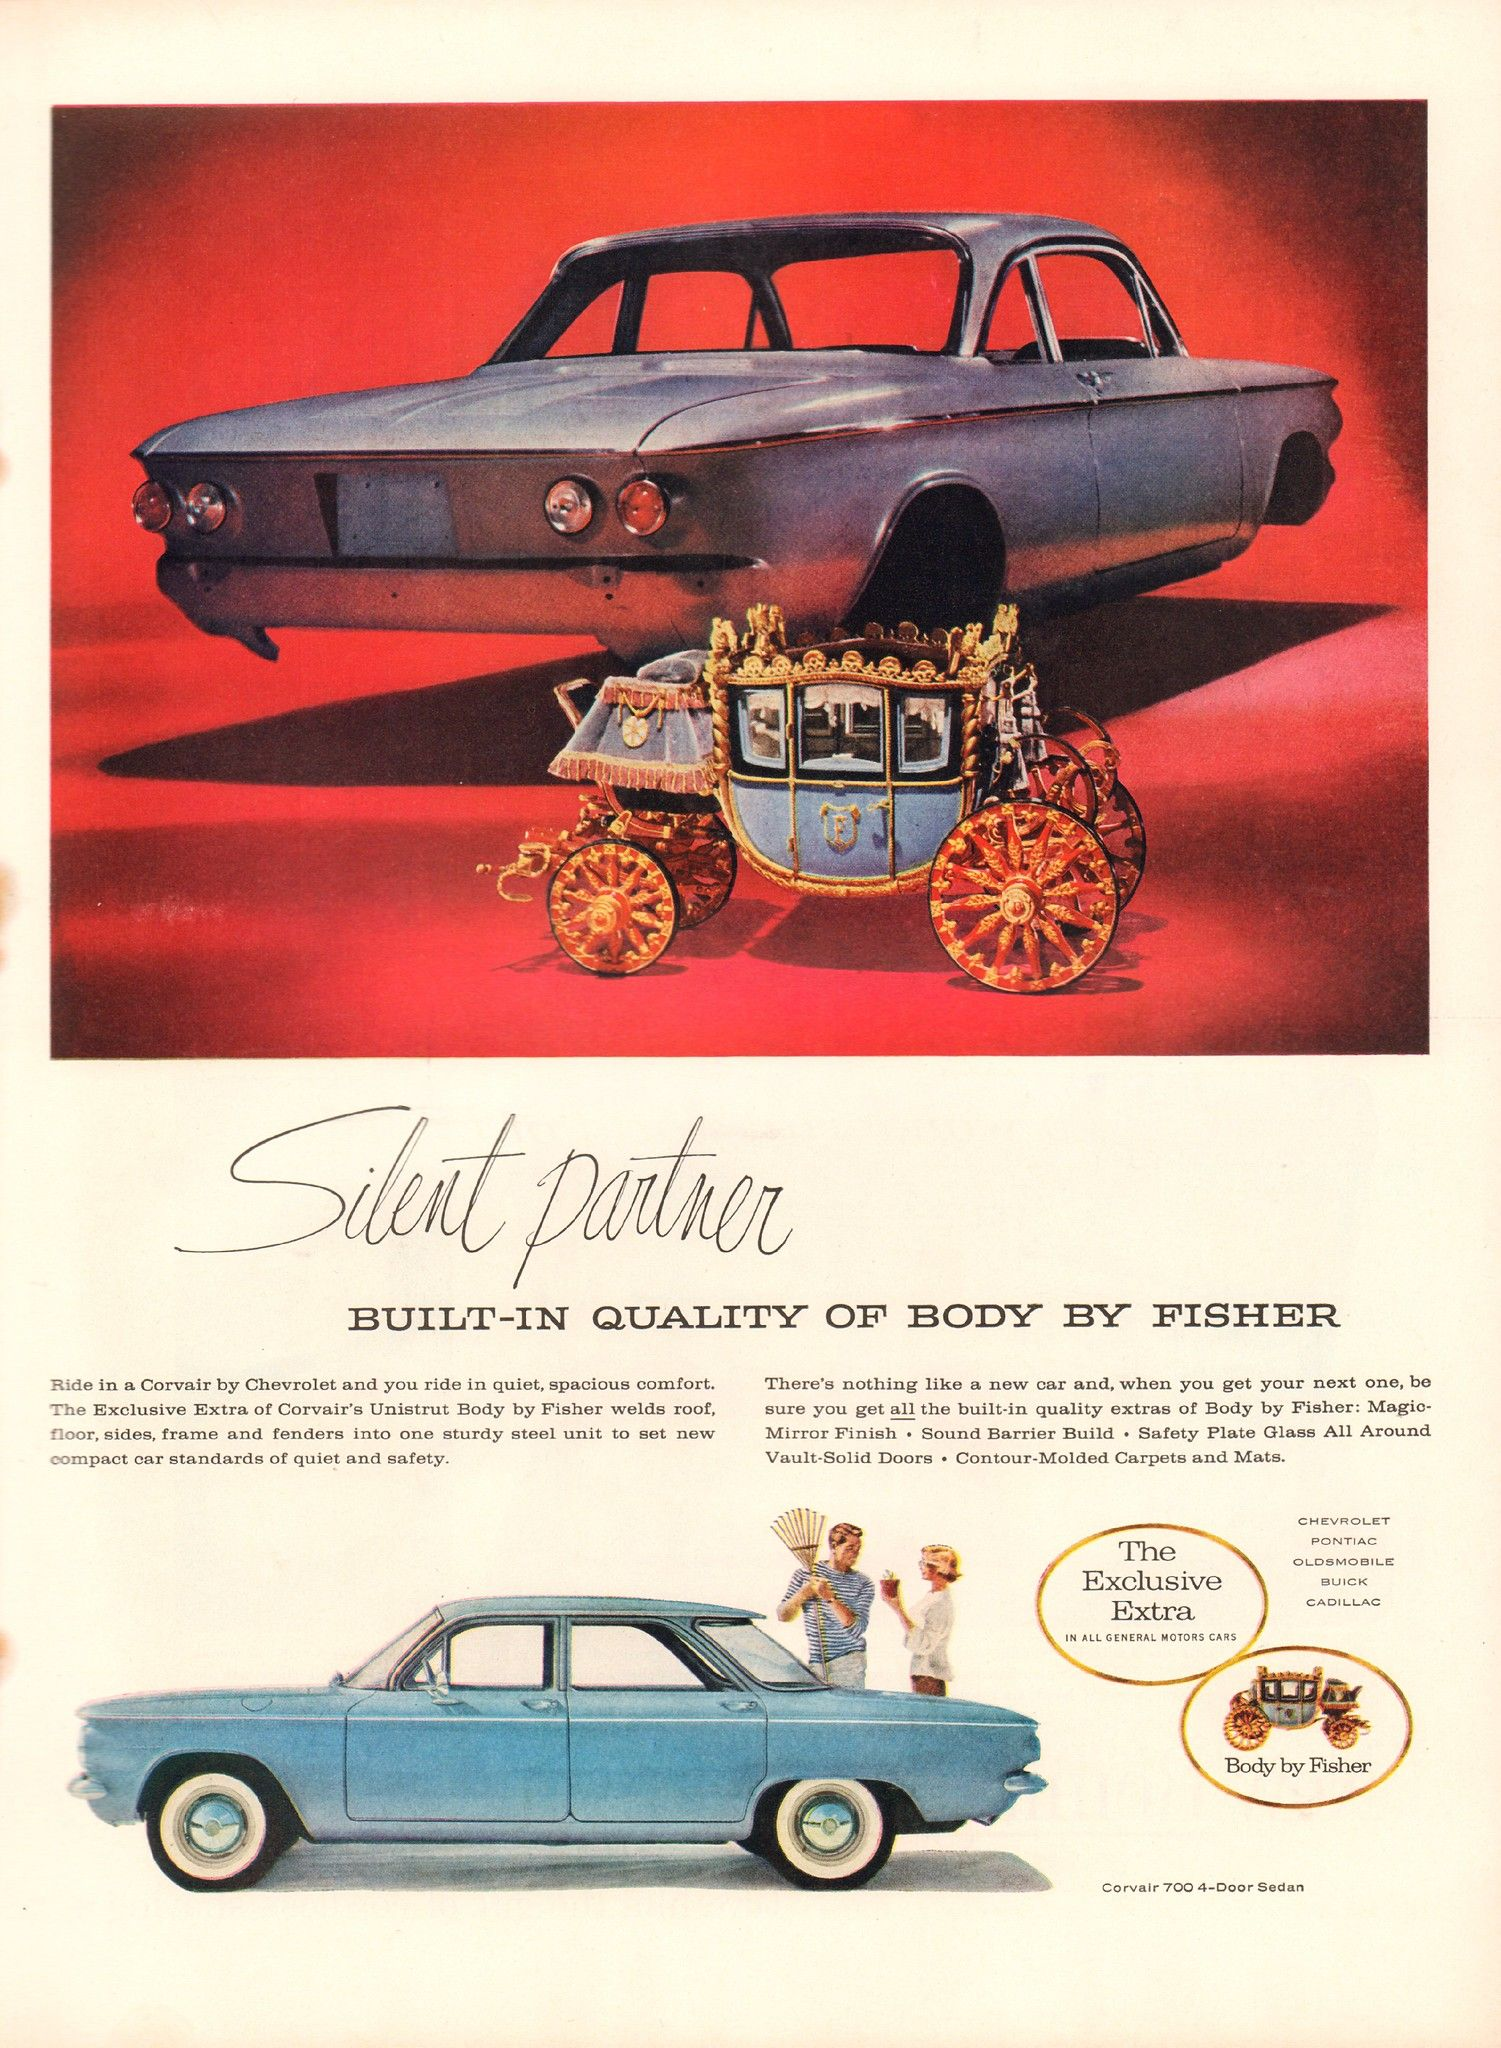 1960 Chevrolet Corvair Body By Fisher Advertisement Life Magazine May 2 1960 Chevrolet Corvair Chevrolet Vintage Muscle Cars